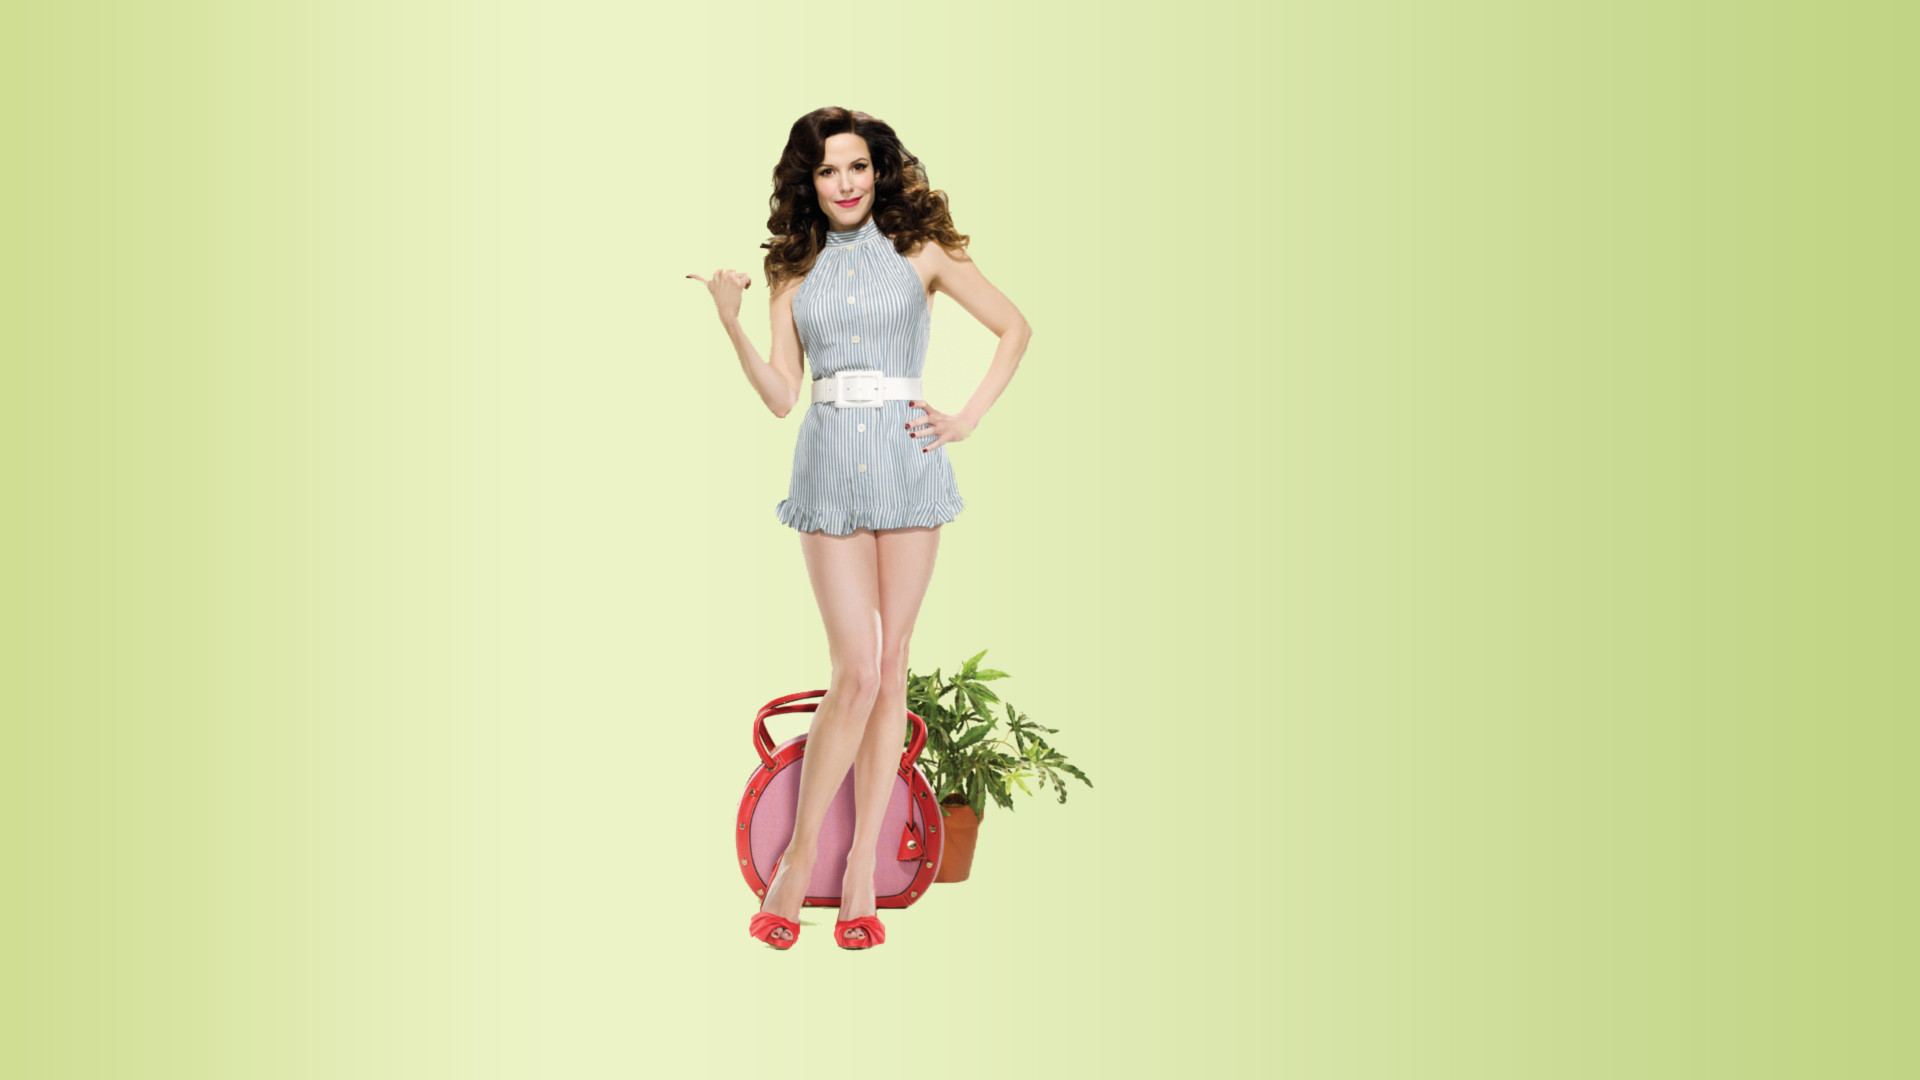 1920x1080 pin-up skirts marijuana mary-louise parker pinup HD Wallpaper of .